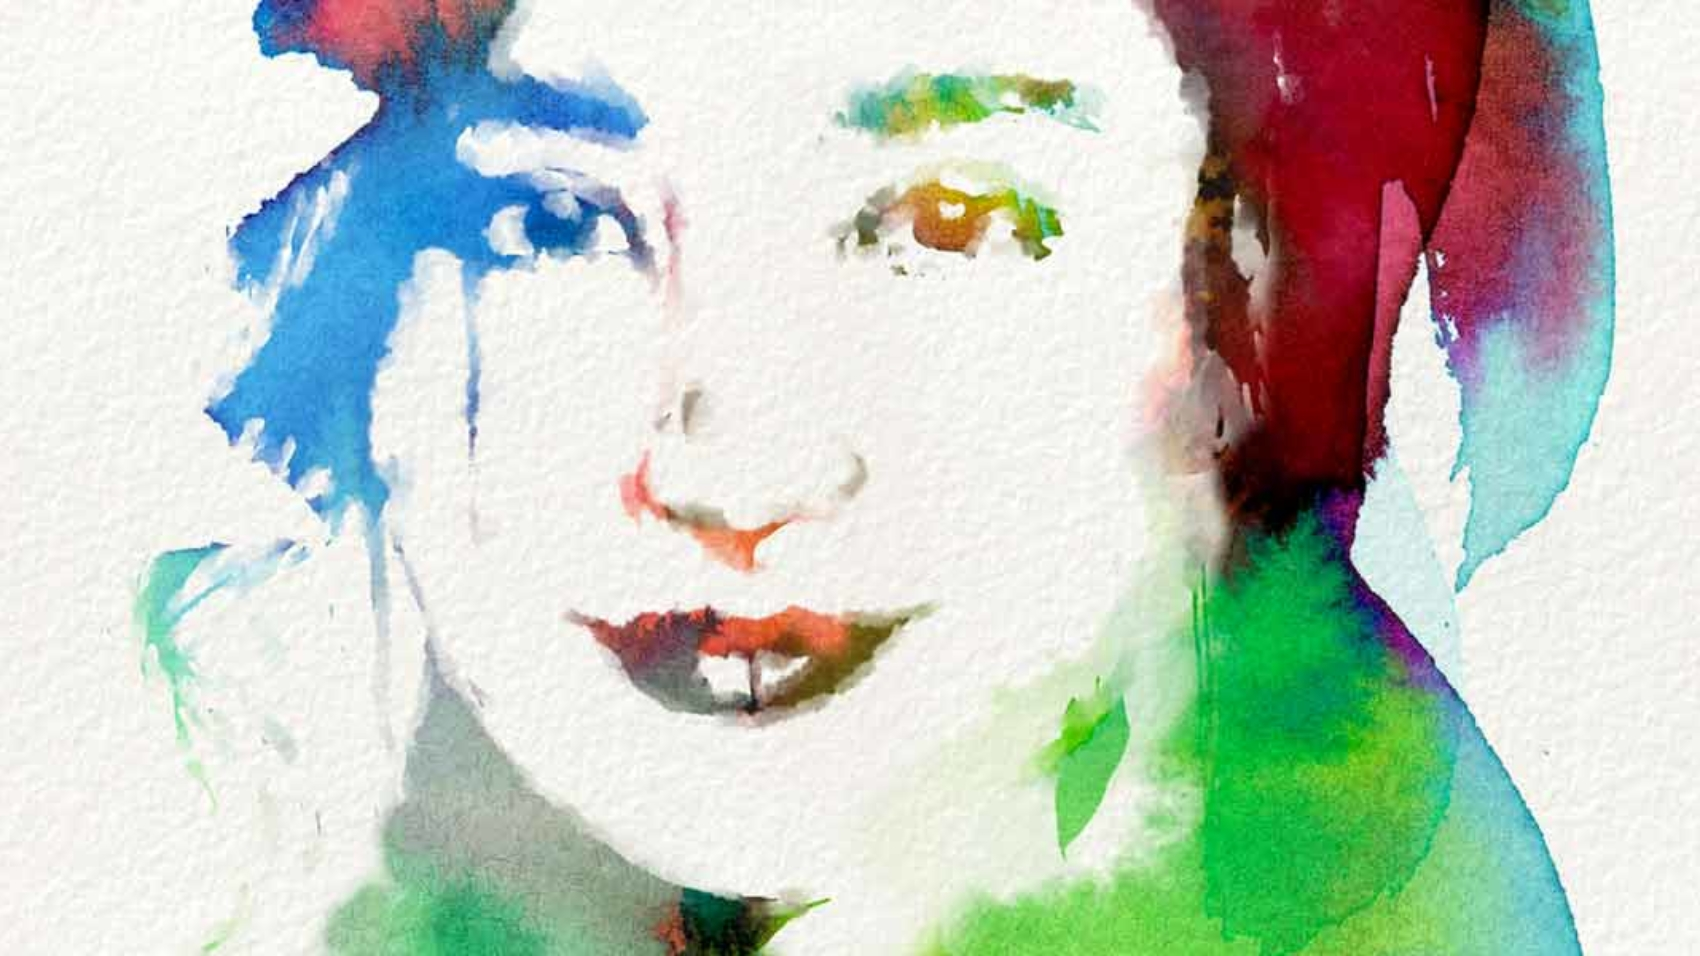 Free Photoshop Brushes of Dynamic Watercolor to Create Digital Watercolour using negative space